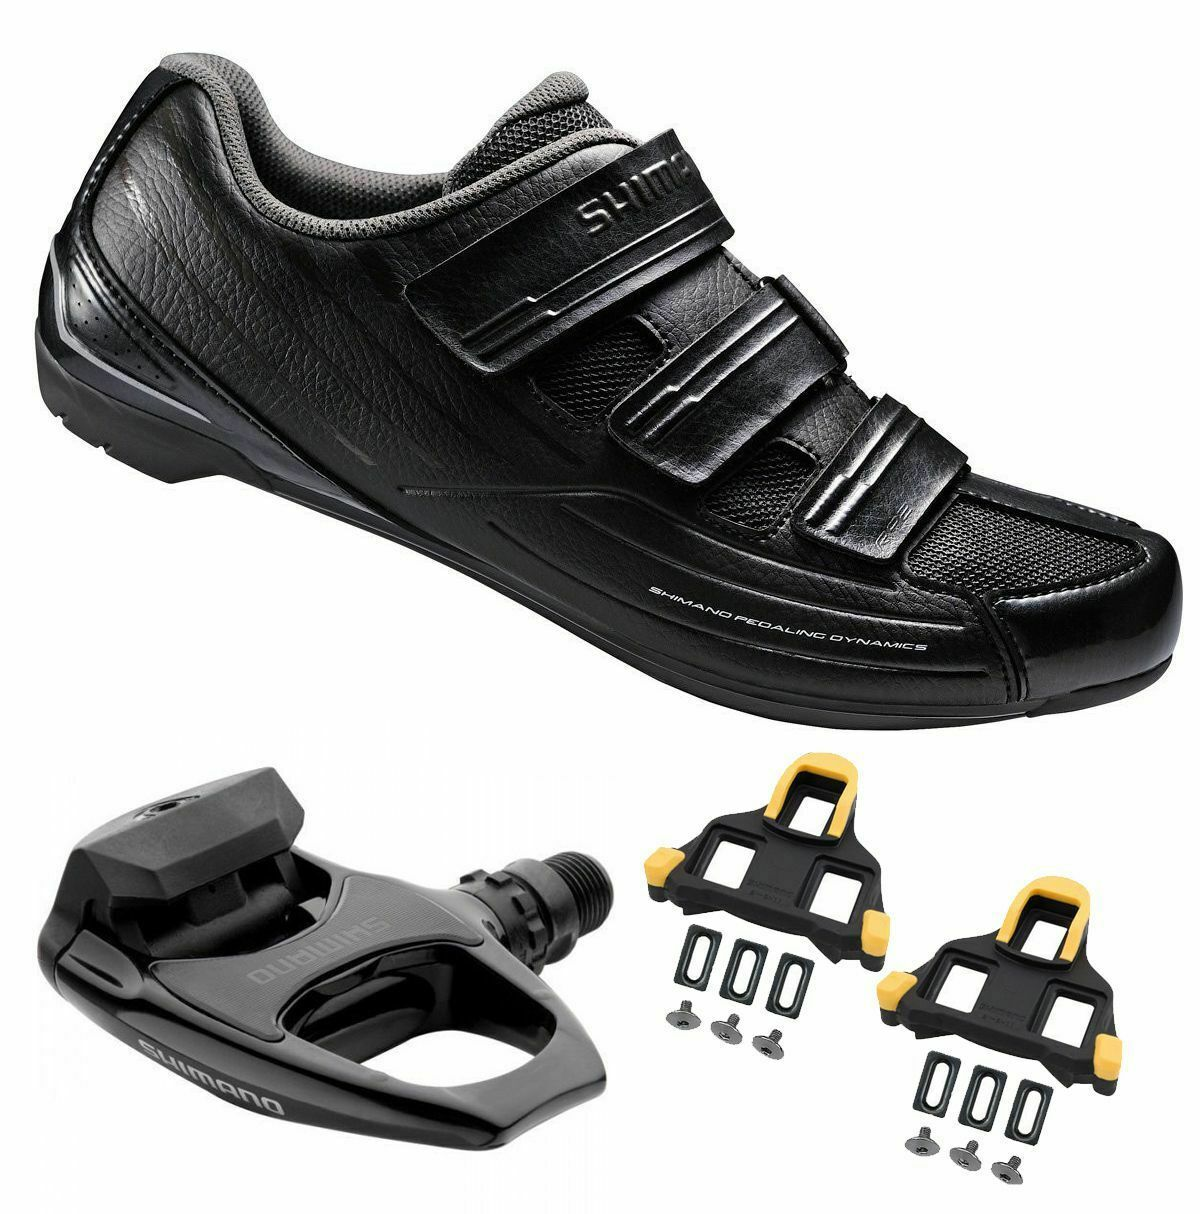 6bd0ea278e5 h m s Remaining. Shimano SH-RP2 SPD Touring Road Cycling Black Shoes ...